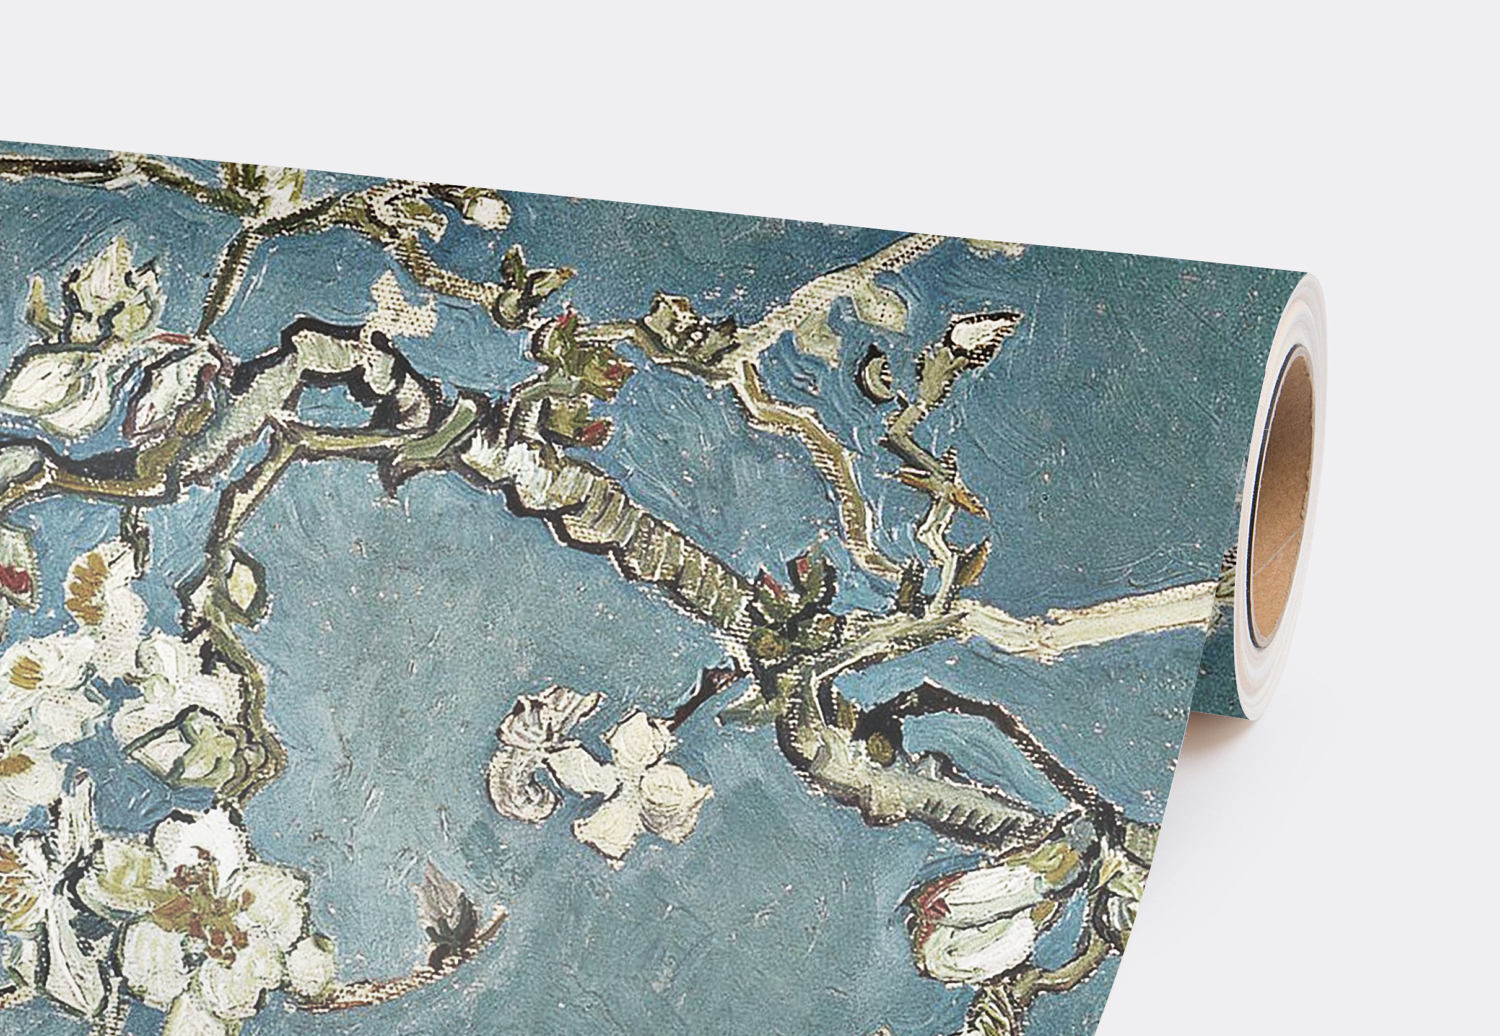 Cherry blossom wallpaper,  Chinoiserie wall mural,  Removable wallpaper